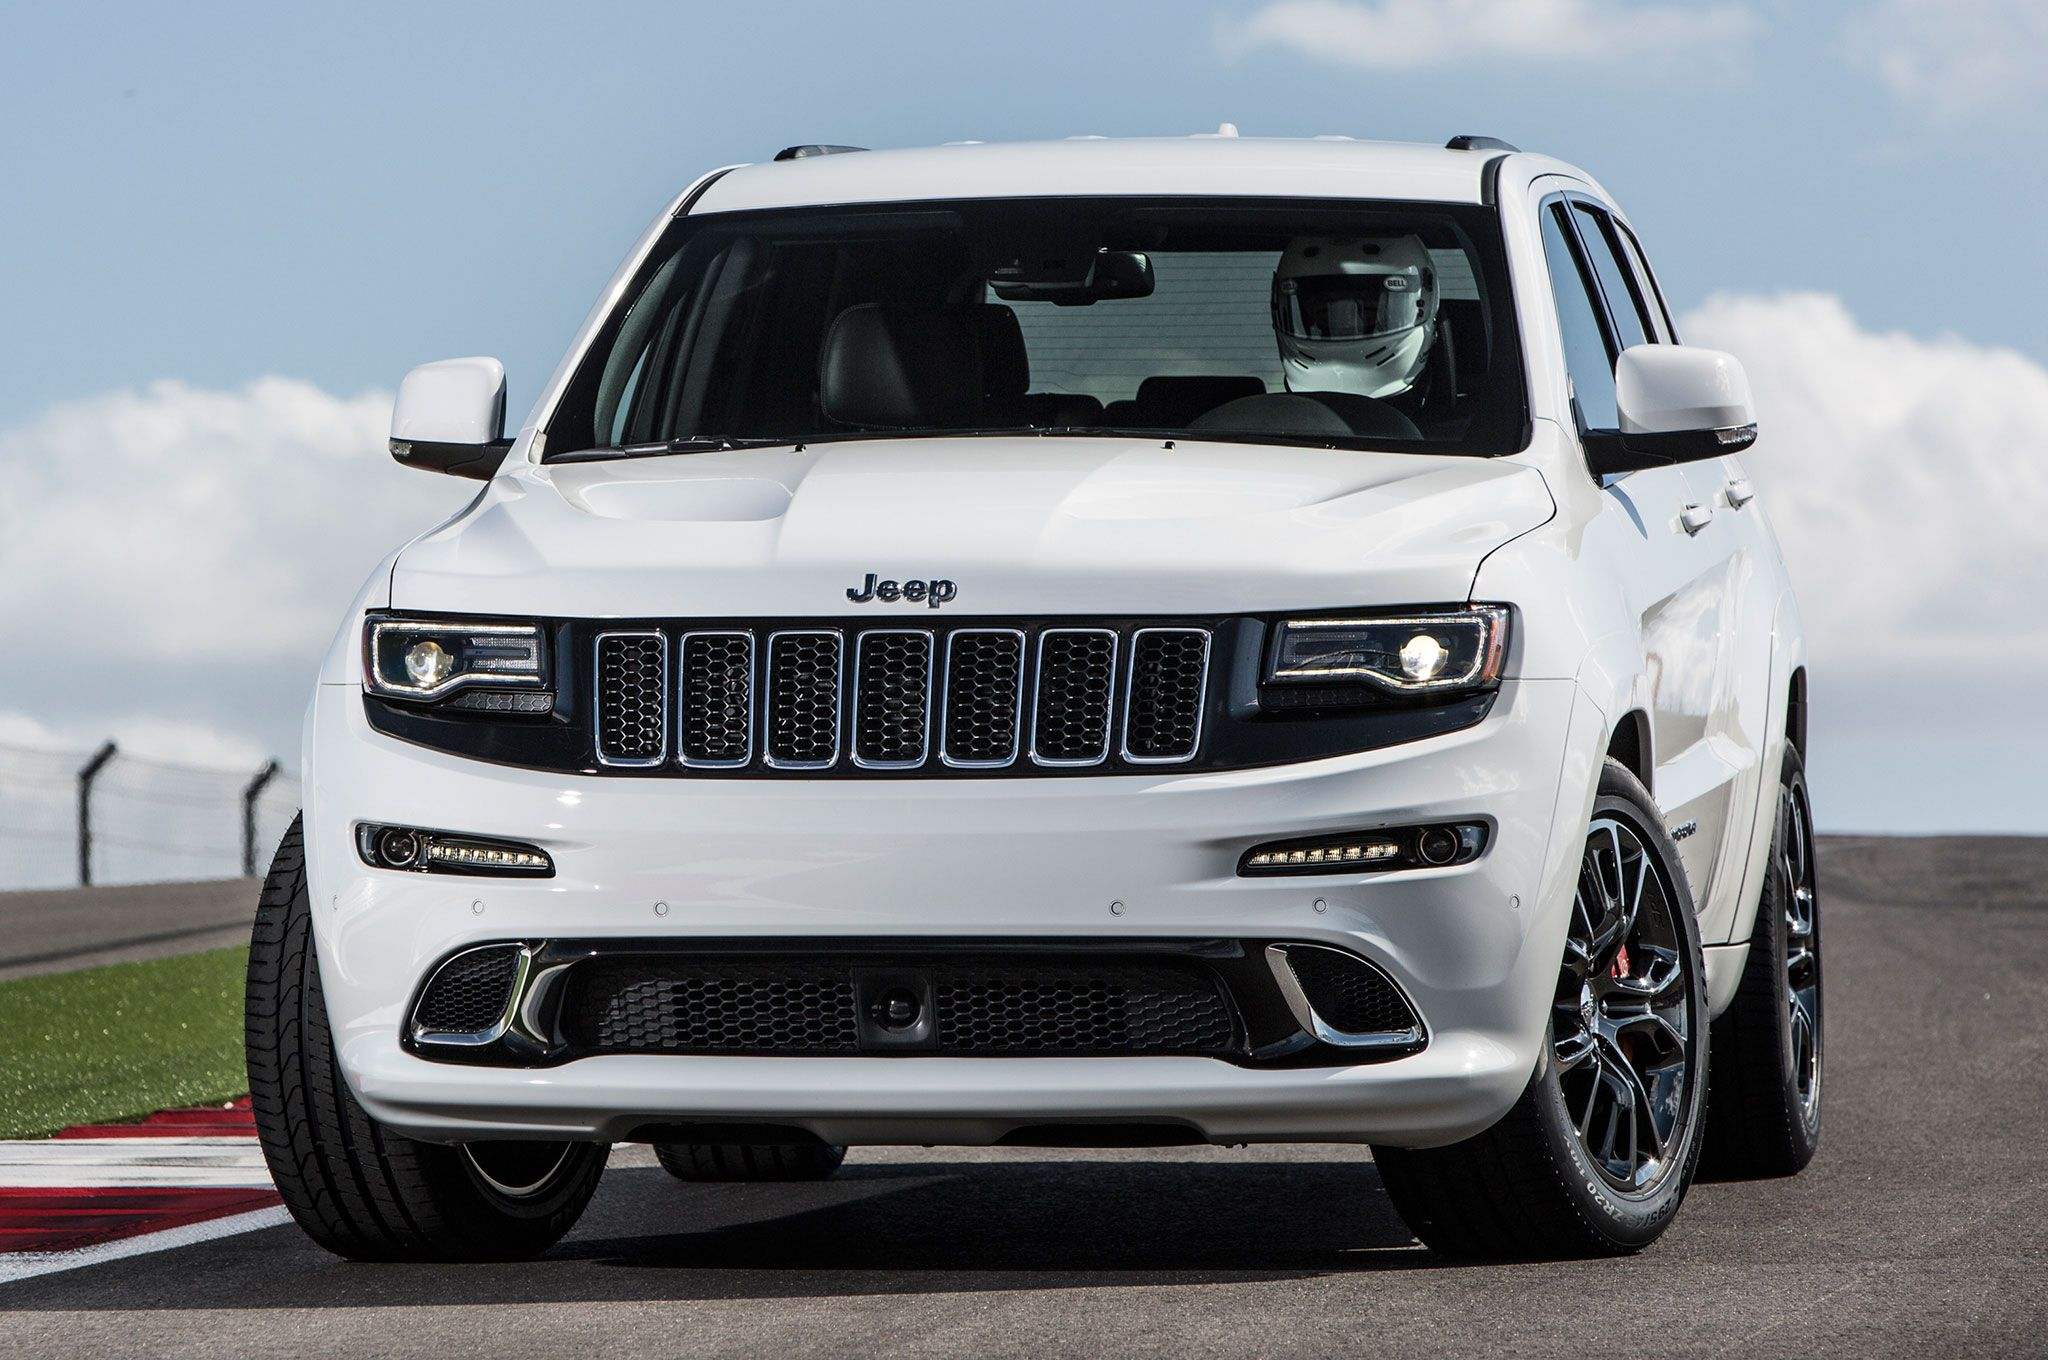 Superior 2014 Jeep Grand Cherokee SRT8 Wallpapers Hd